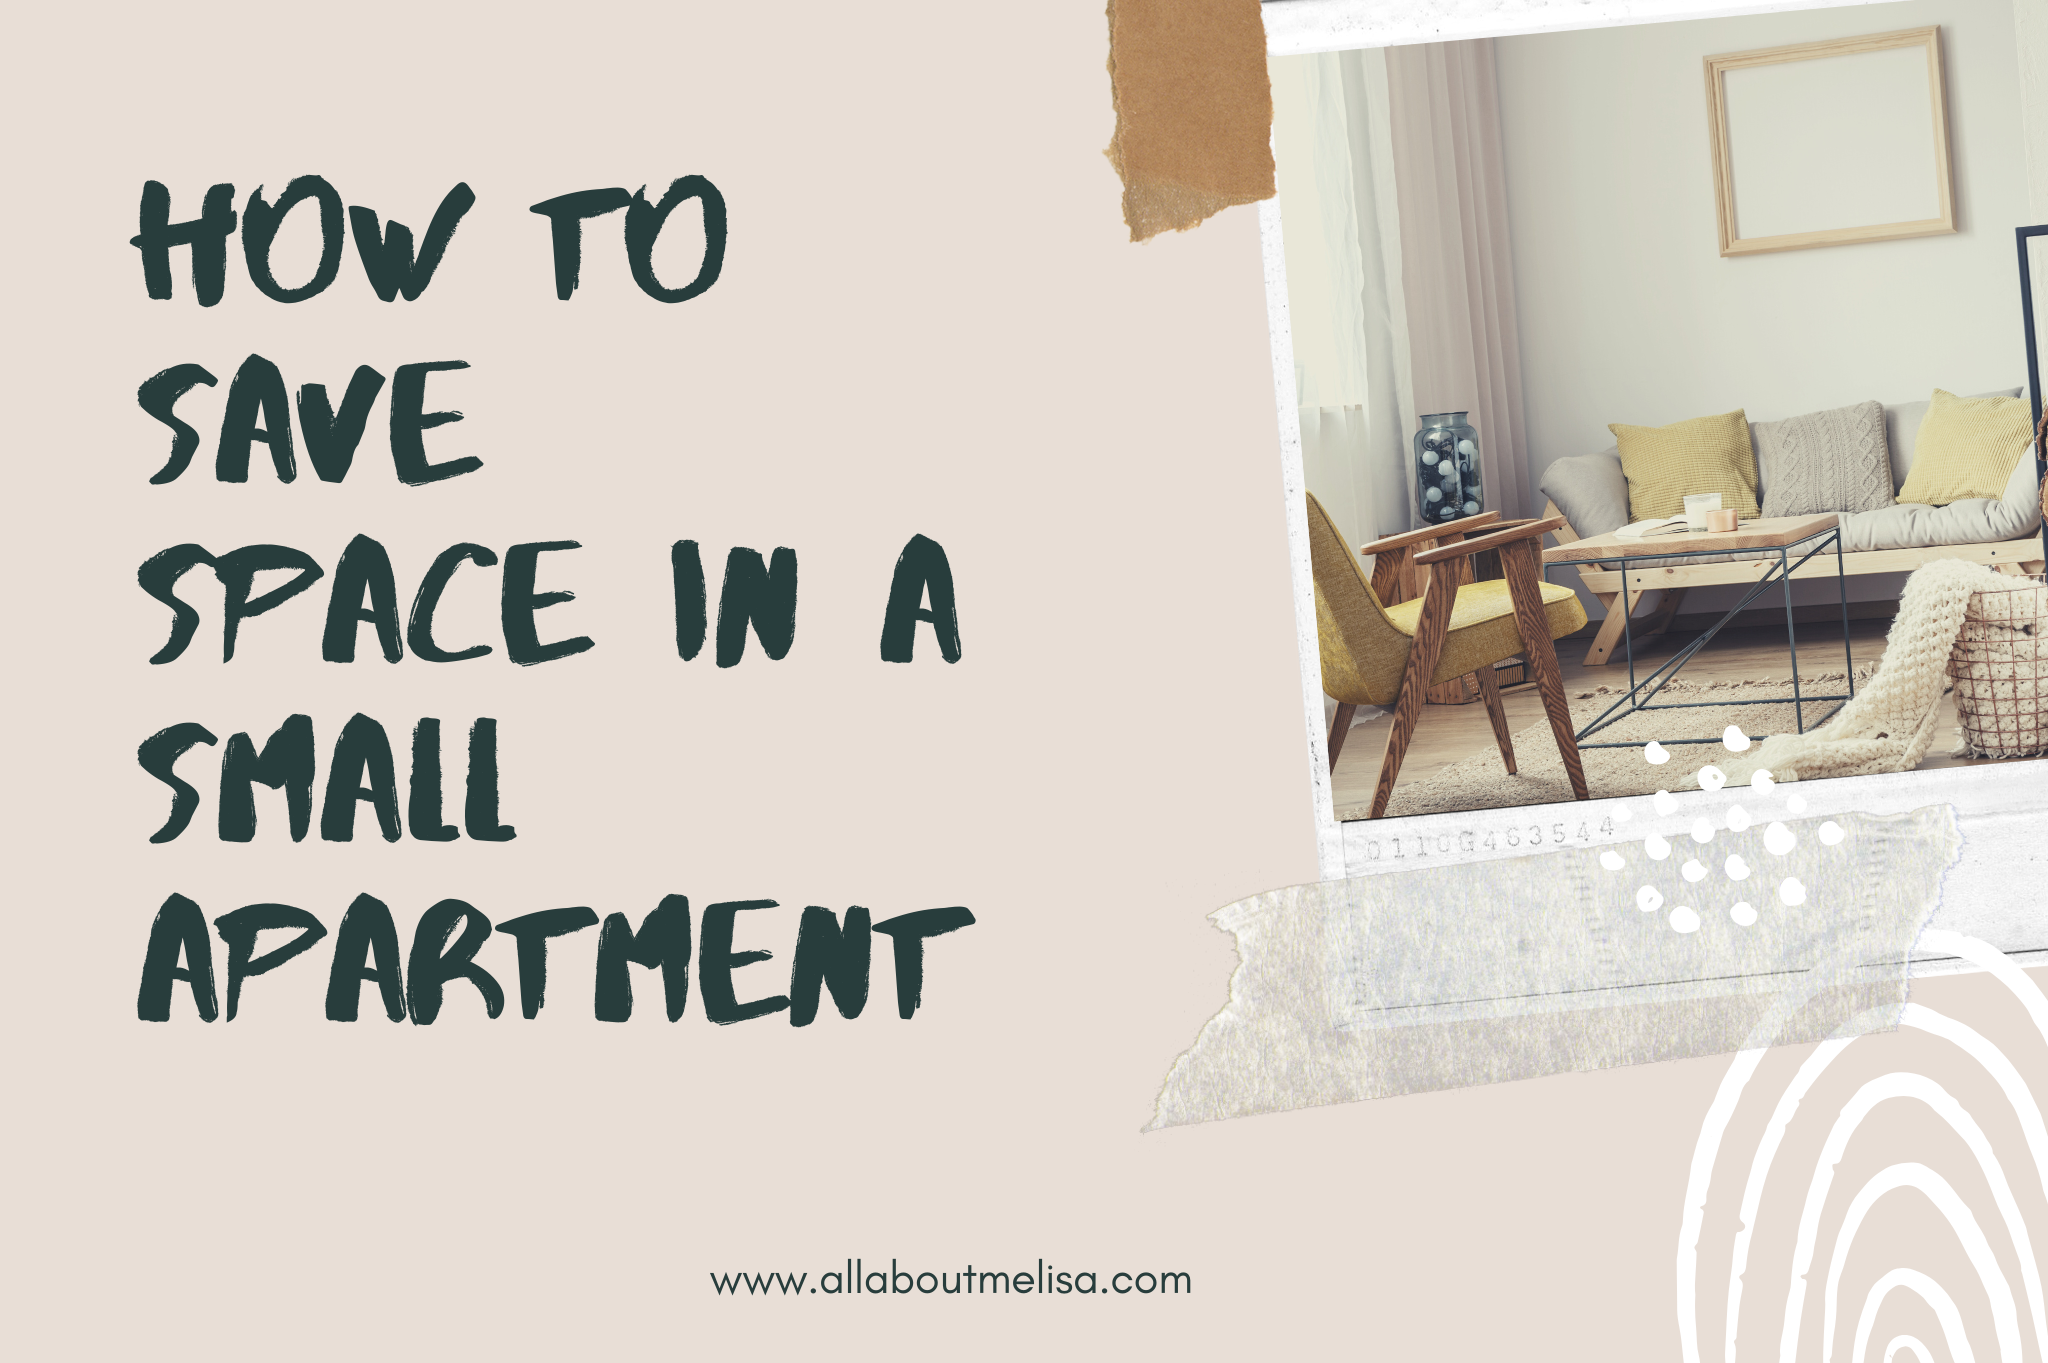 how to save space in a small apartment